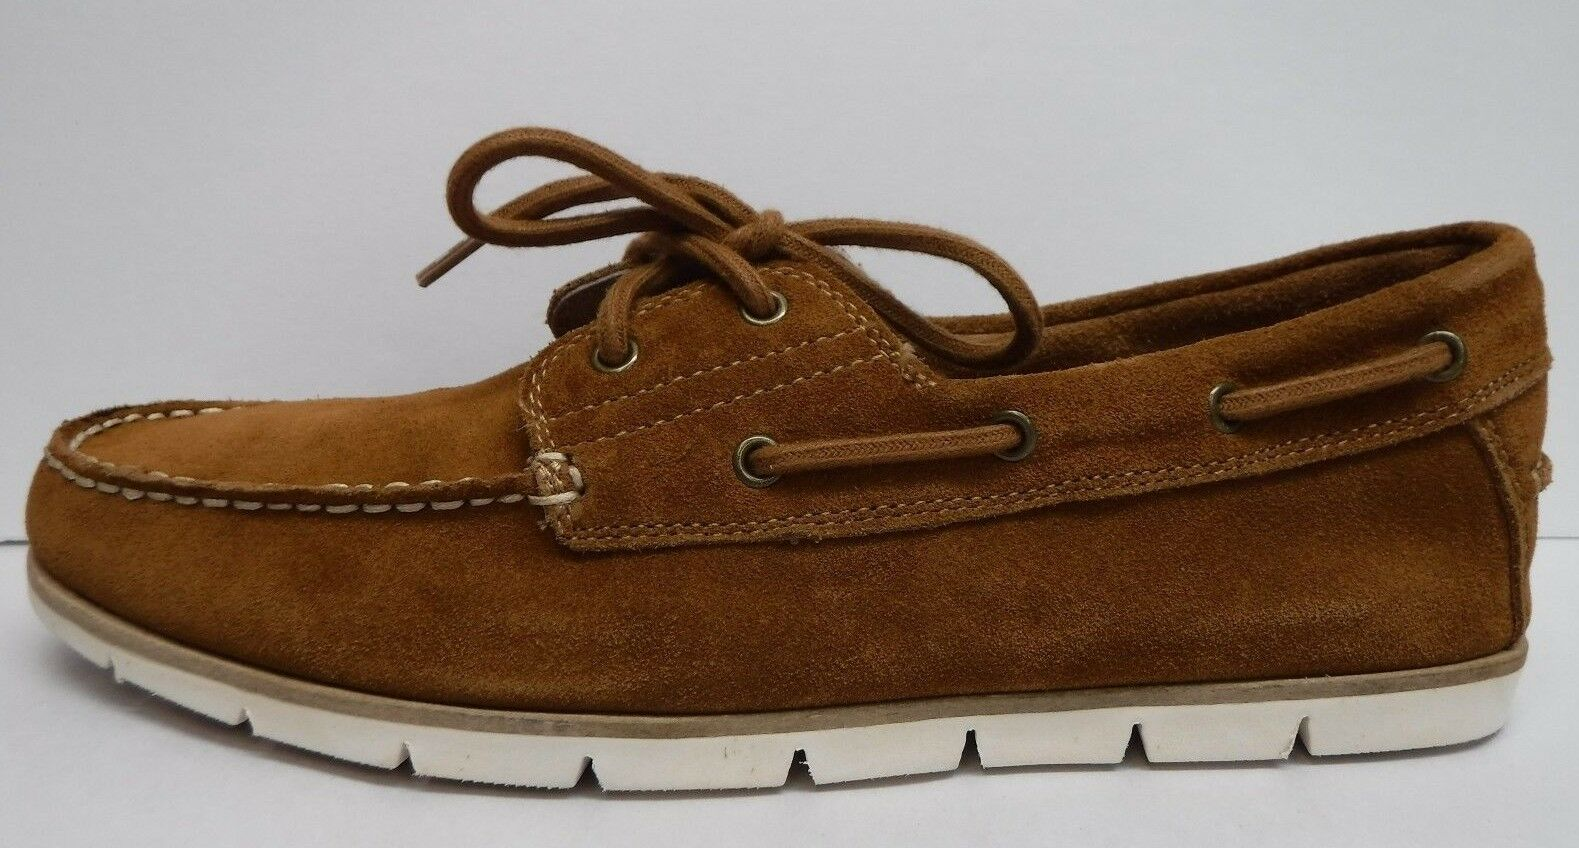 Scarpe casual da uomo  Steve Madden Size 10 Brown Suede Boat Shoes New uomos